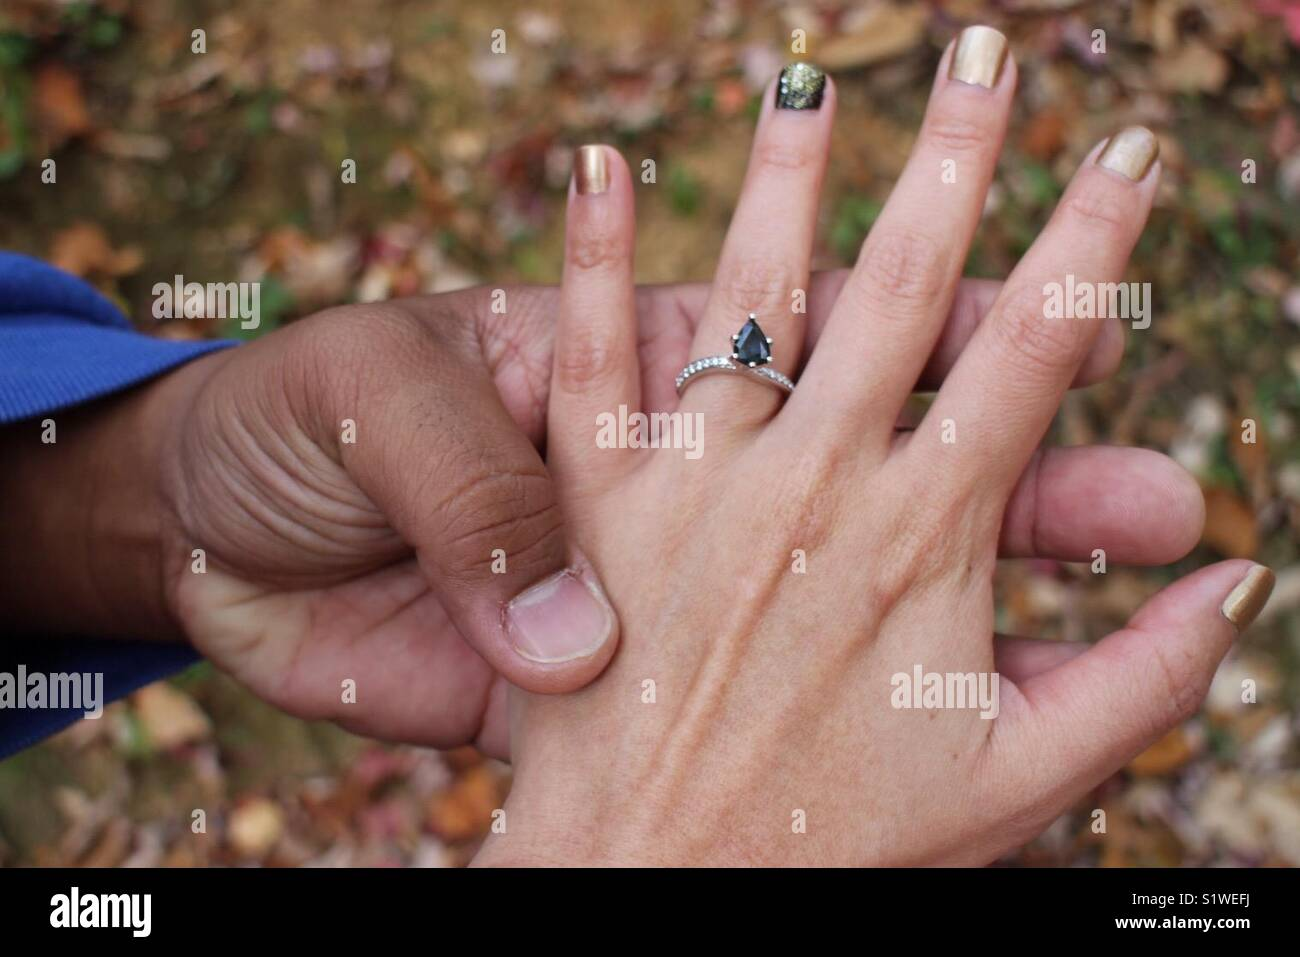 Blue Sapphire Ring Stock Photos & Blue Sapphire Ring Stock Images ...